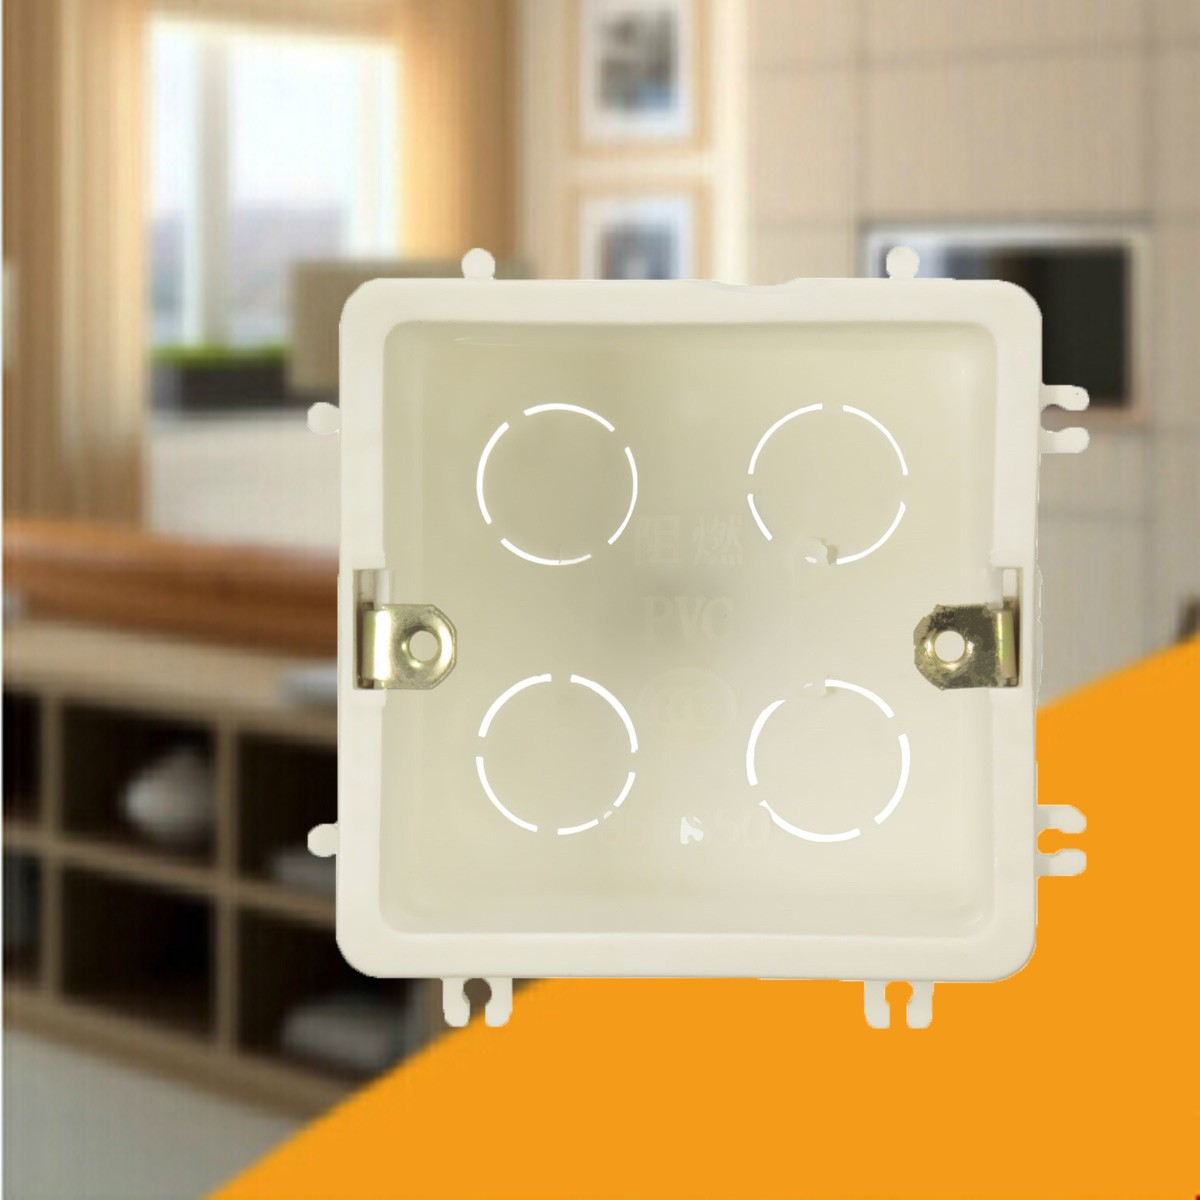 цена на 86*86mm Cassette Universal White Wall Mounting Box for Wall Switch and Plastic Enclosure Socket Back Box Outlet 86mm